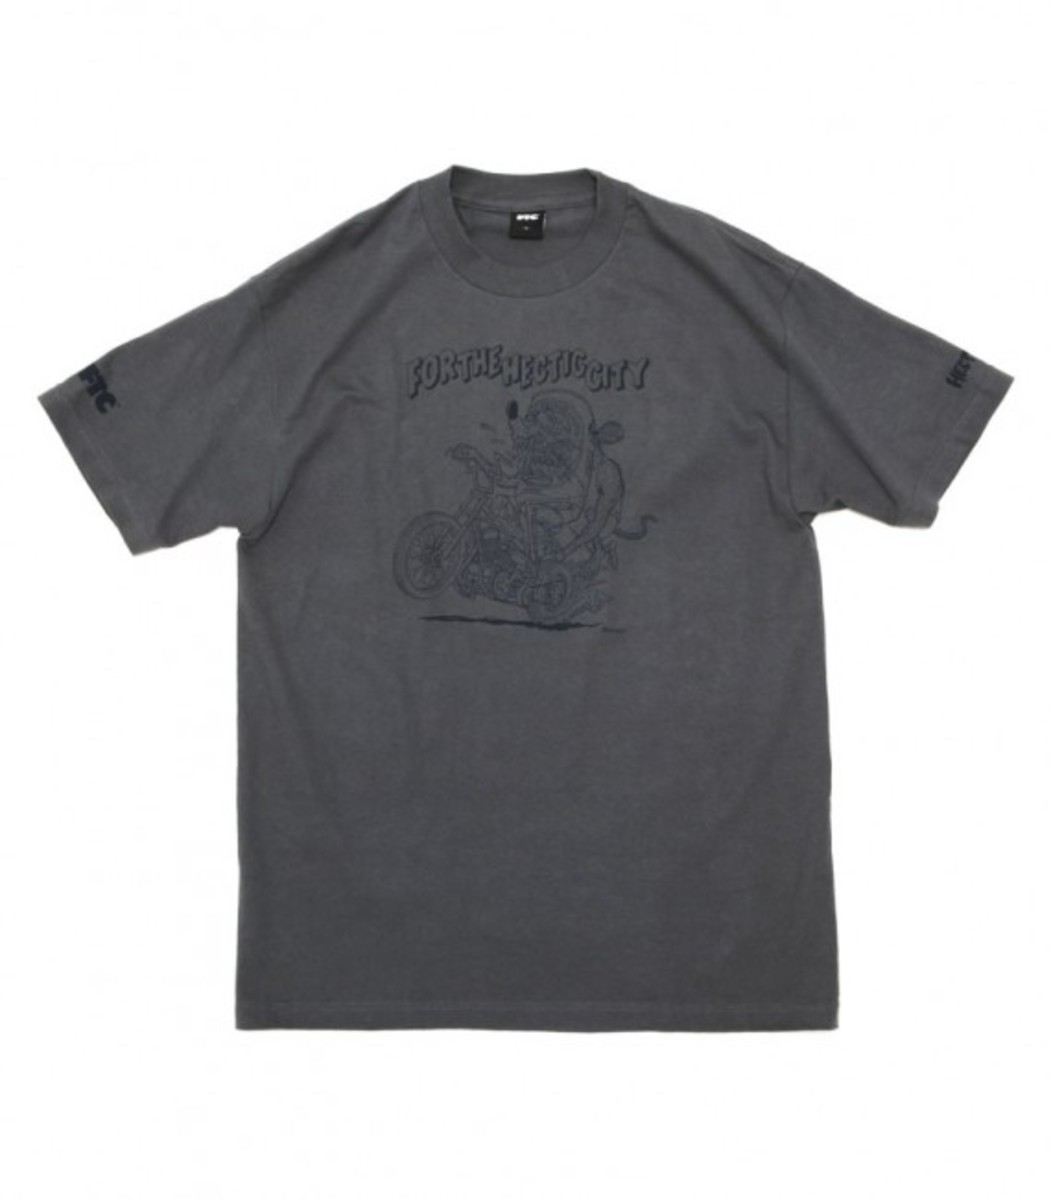 For The Hectic City T-Shirt Charcoal